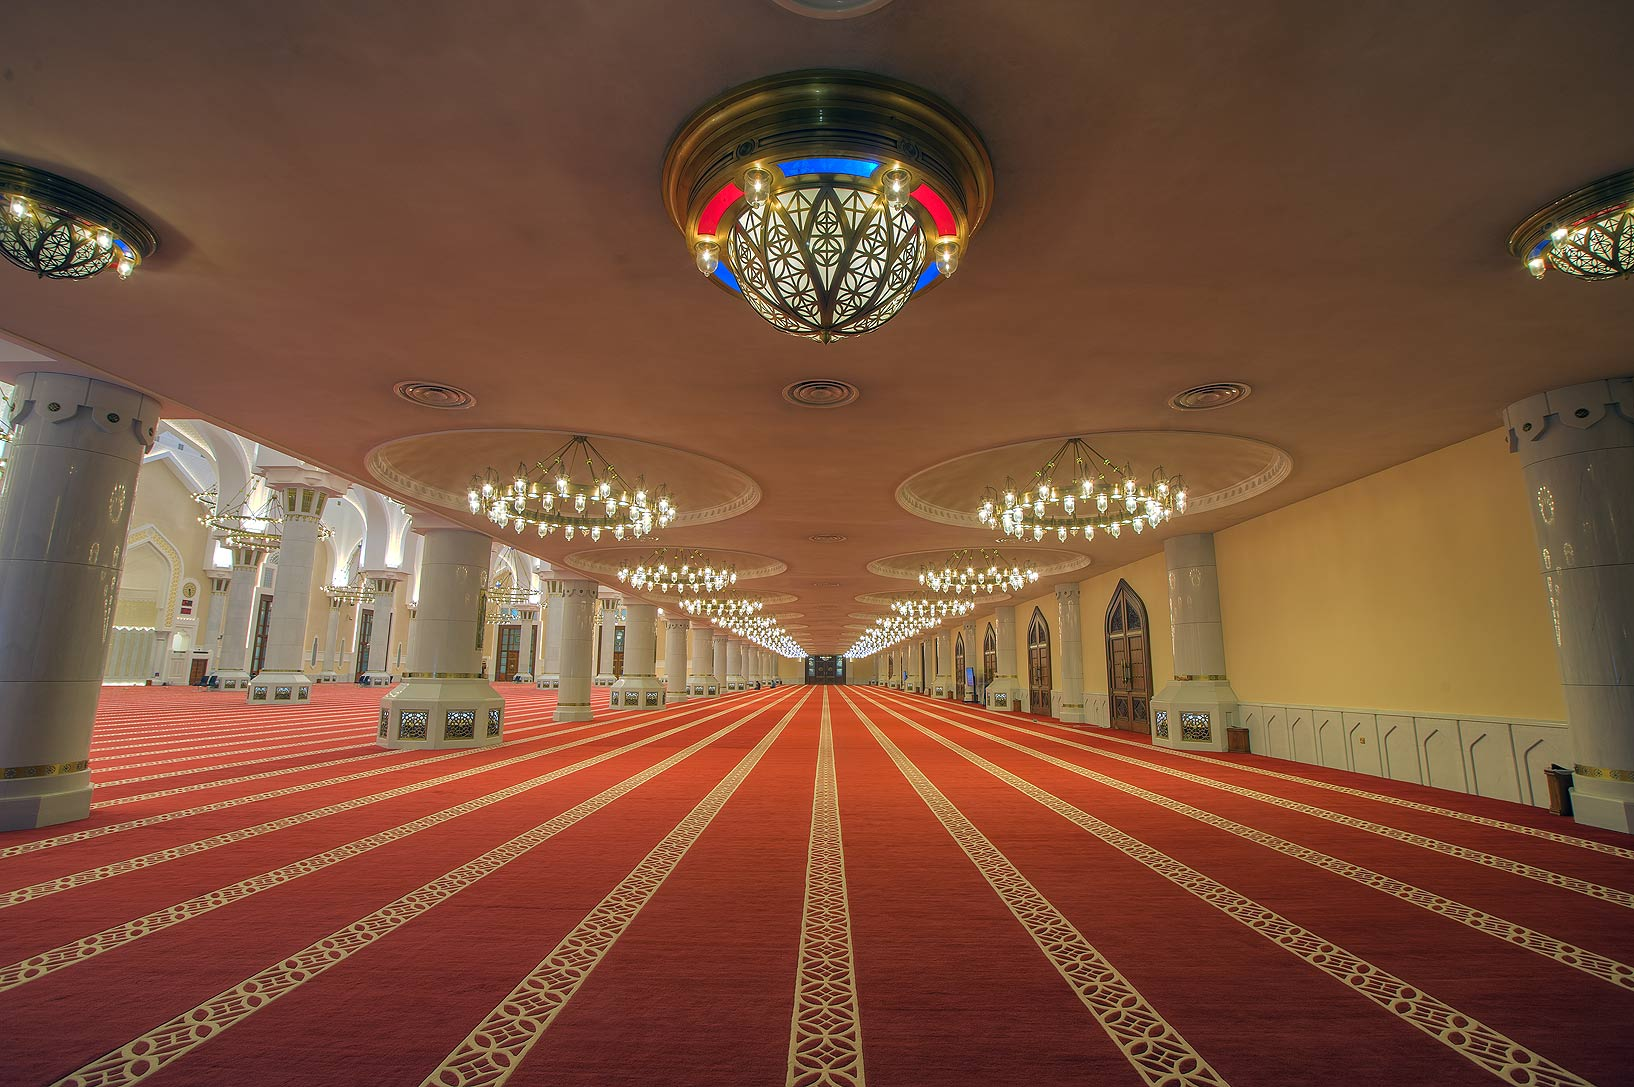 Entrance space in prayer hall (musallah) of State...Ibn Abdul Wahhab Mosque). Doha, Qatar